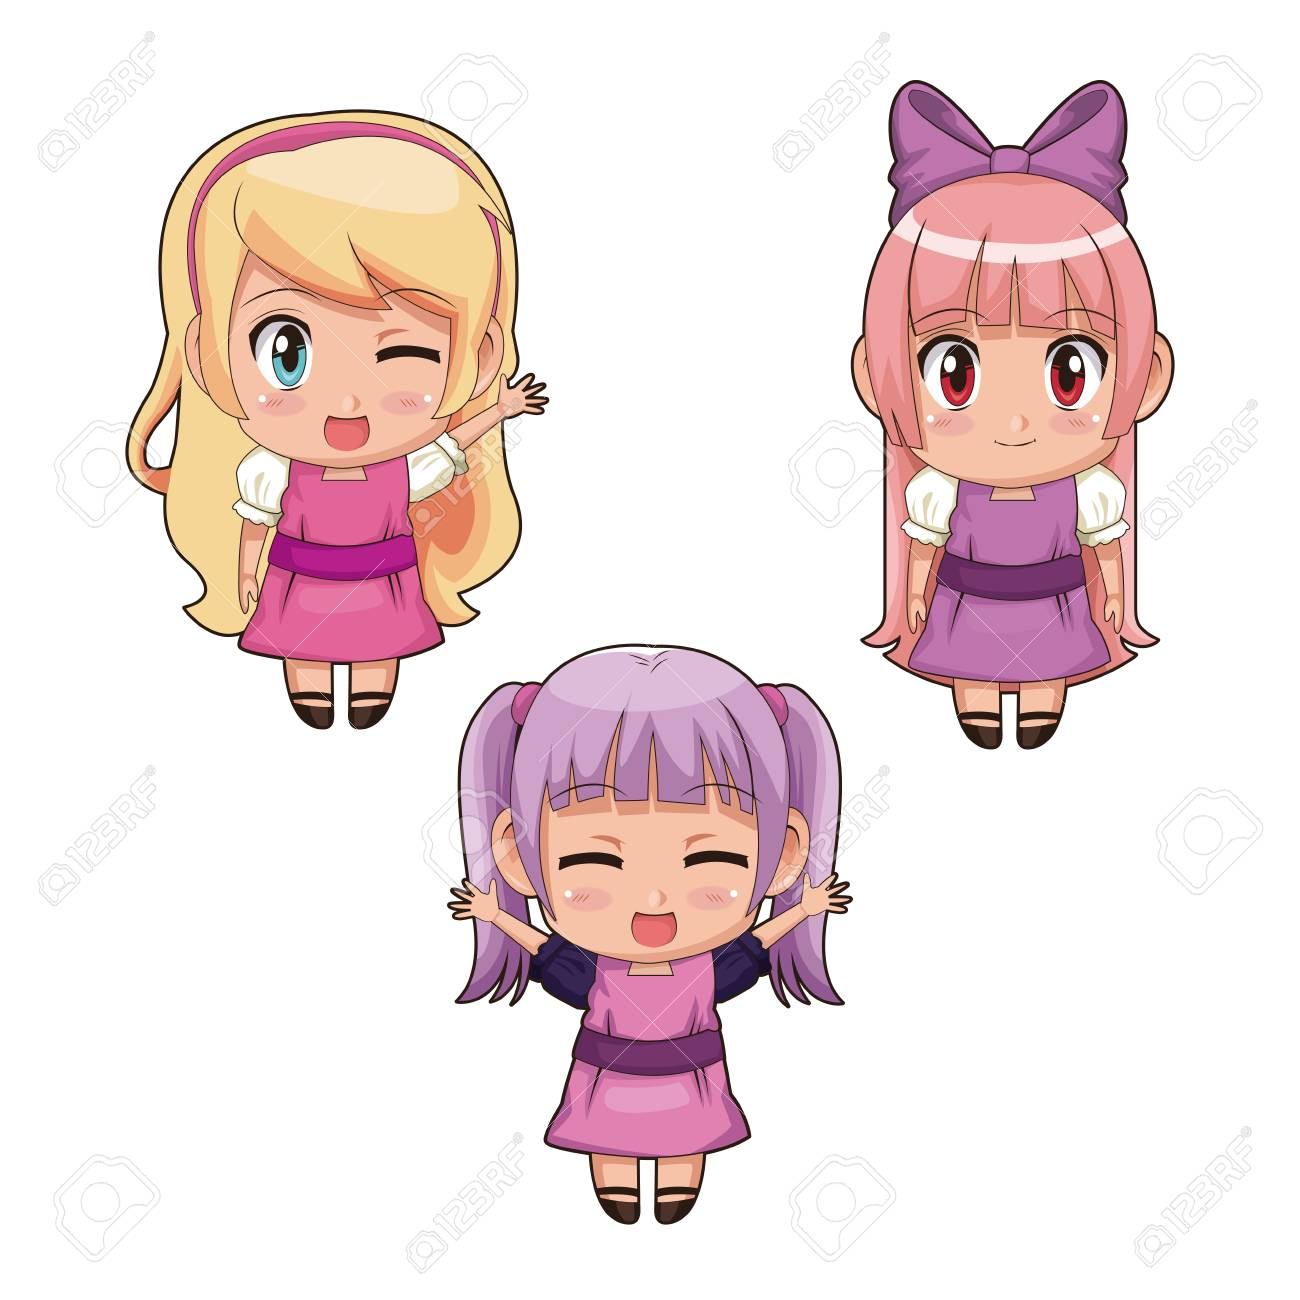 colorful set full body cute anime girls facial expression in